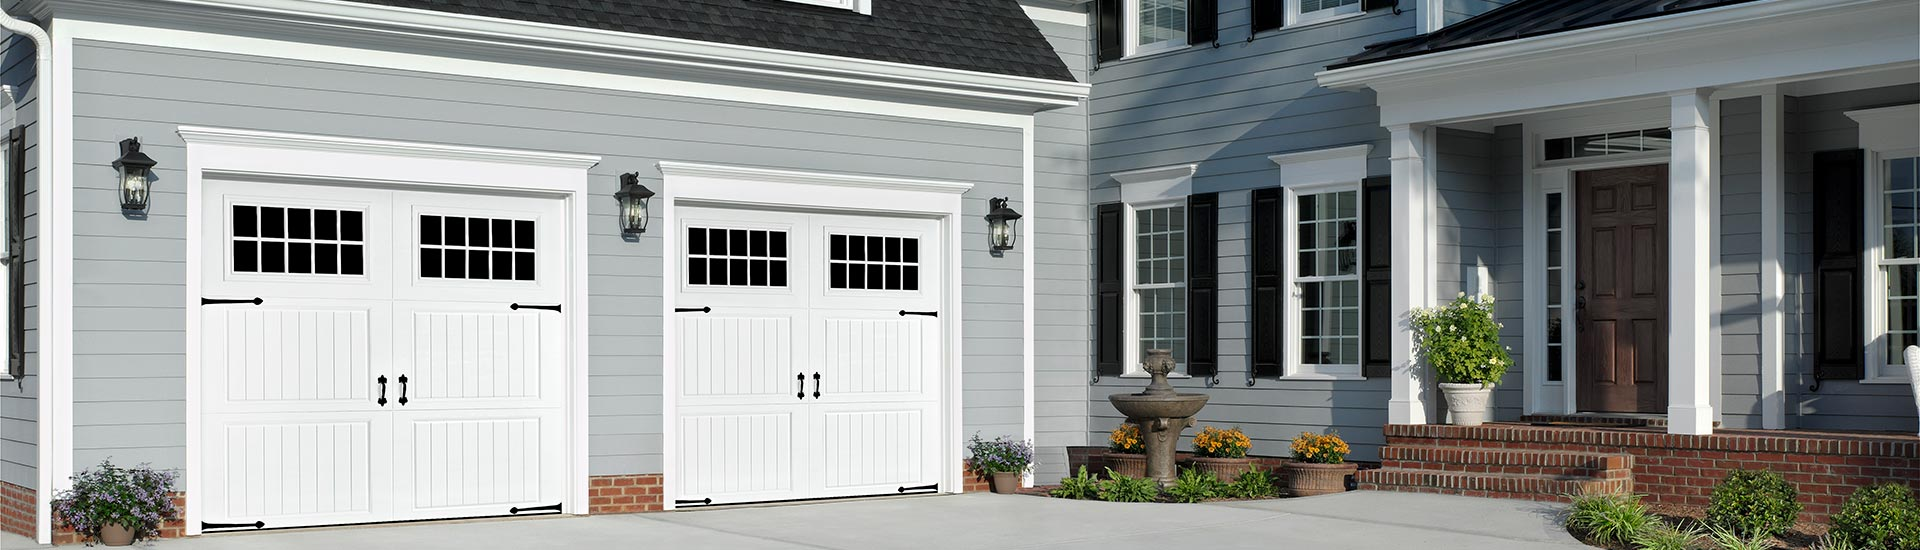 Texas Residential Garage Doors Replacement Repair in Lewisville Frisco